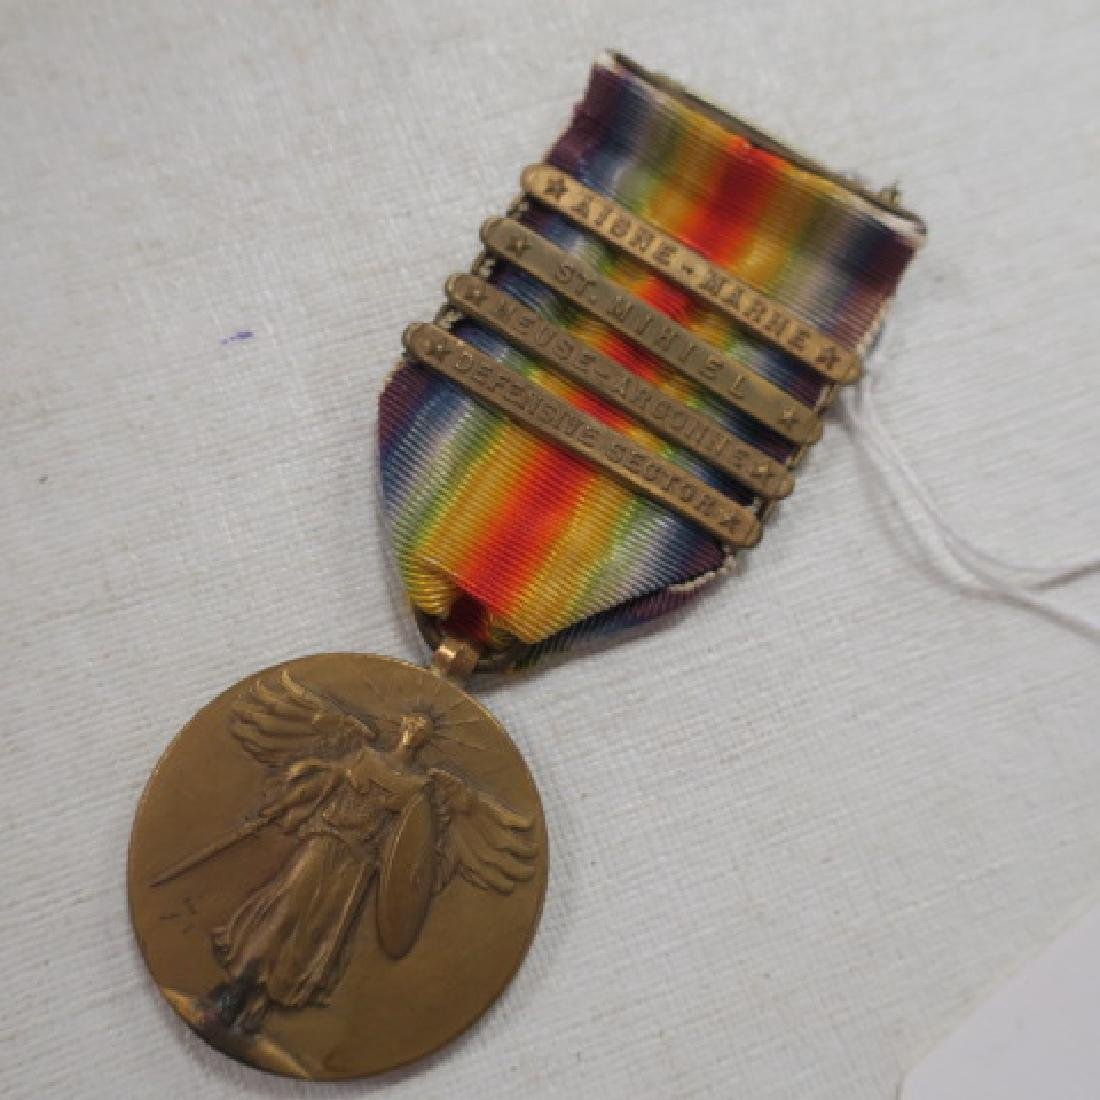 World War One Victory Medal with Four Bars: